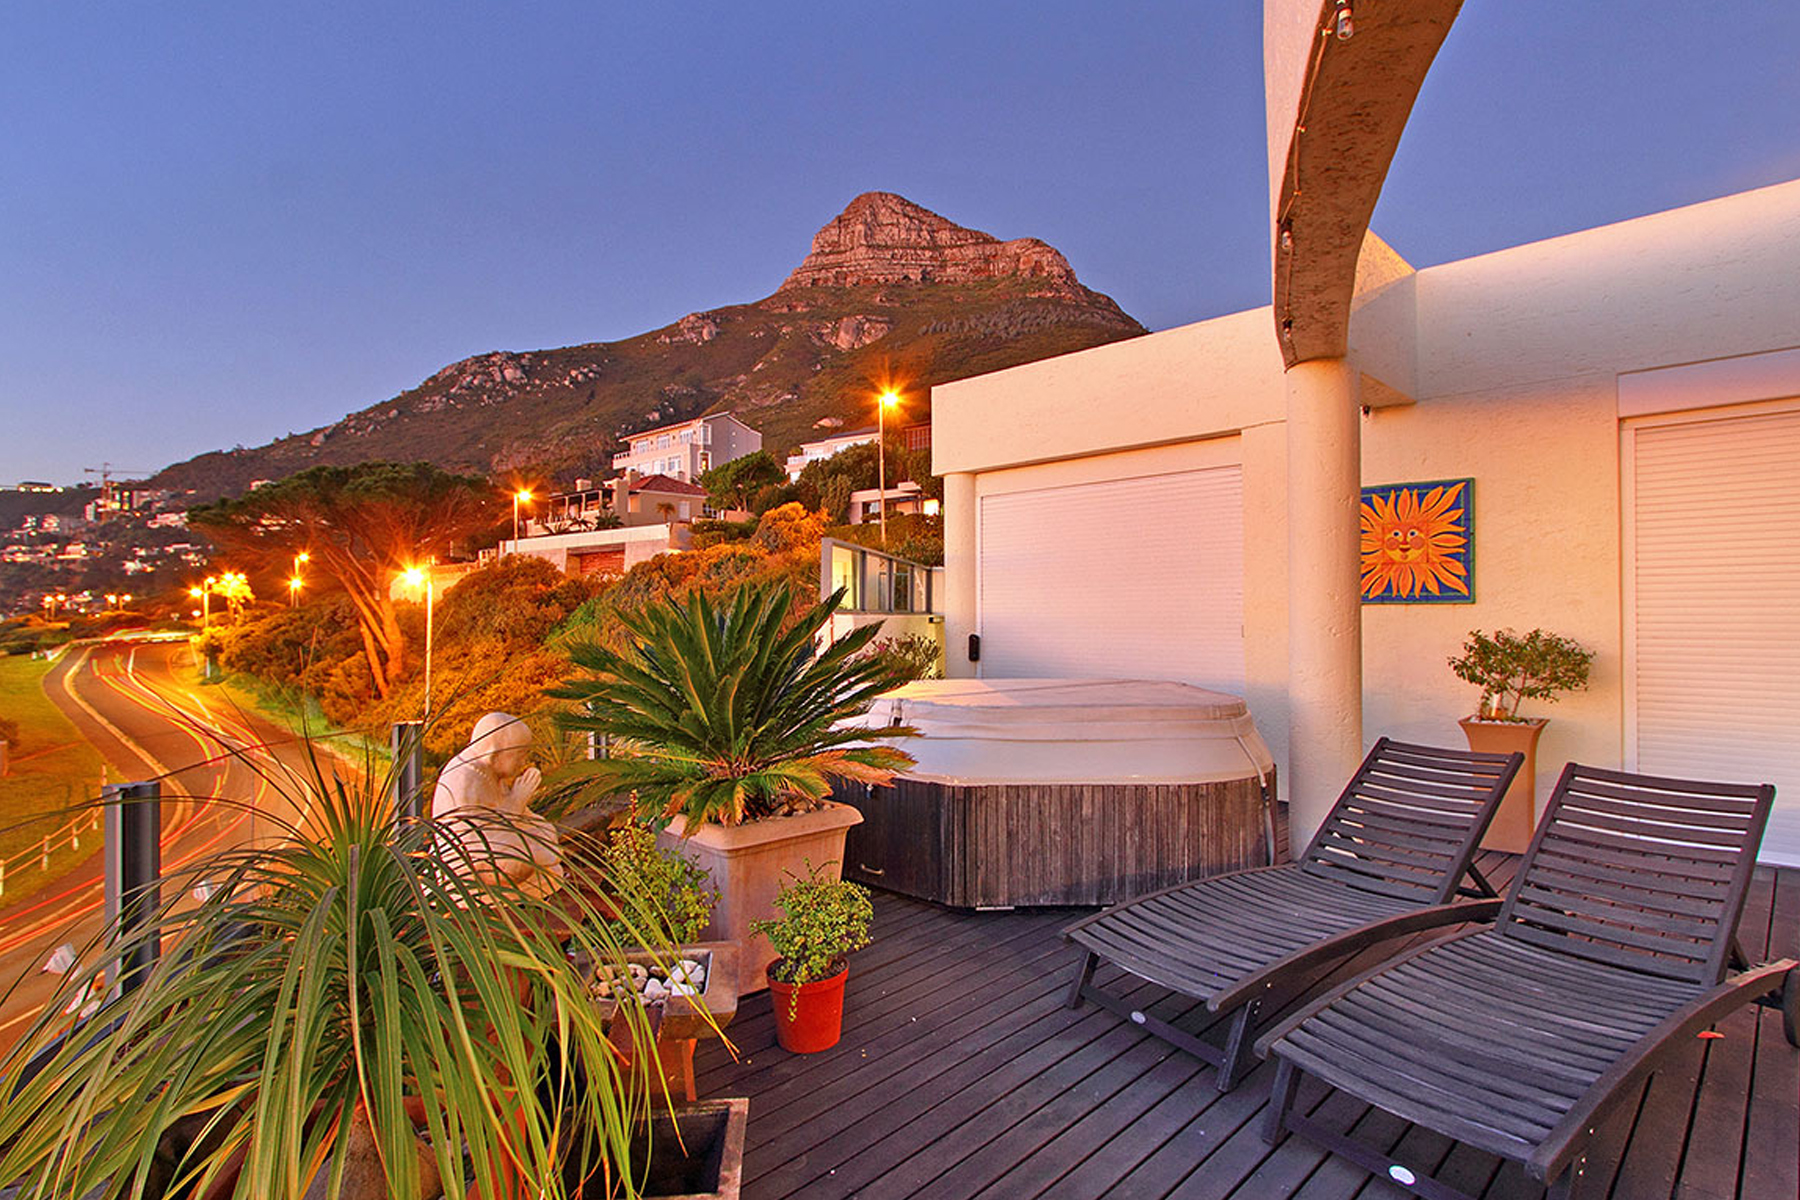 Appartement pour l Vente à Kloof Road, Camps Bay Cape Town, Cap-Occidental 0000 Afrique Du Sud